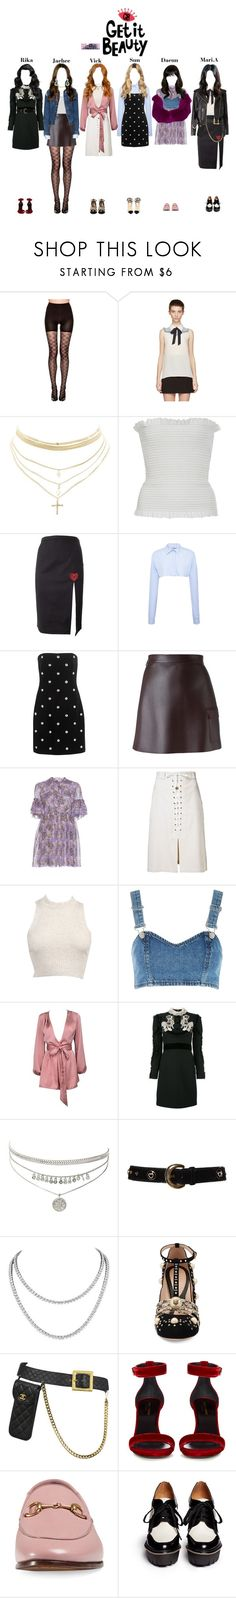 """""""StarZ at Get It Beauty"""" by starz-official ❤ liked on Polyvore featuring SPANX, Miu Miu, Charlotte Russe, Veronique Branquinho, Christopher Kane, Nina Ricci, Versus, MSGM, Sea, New York and Topshop"""